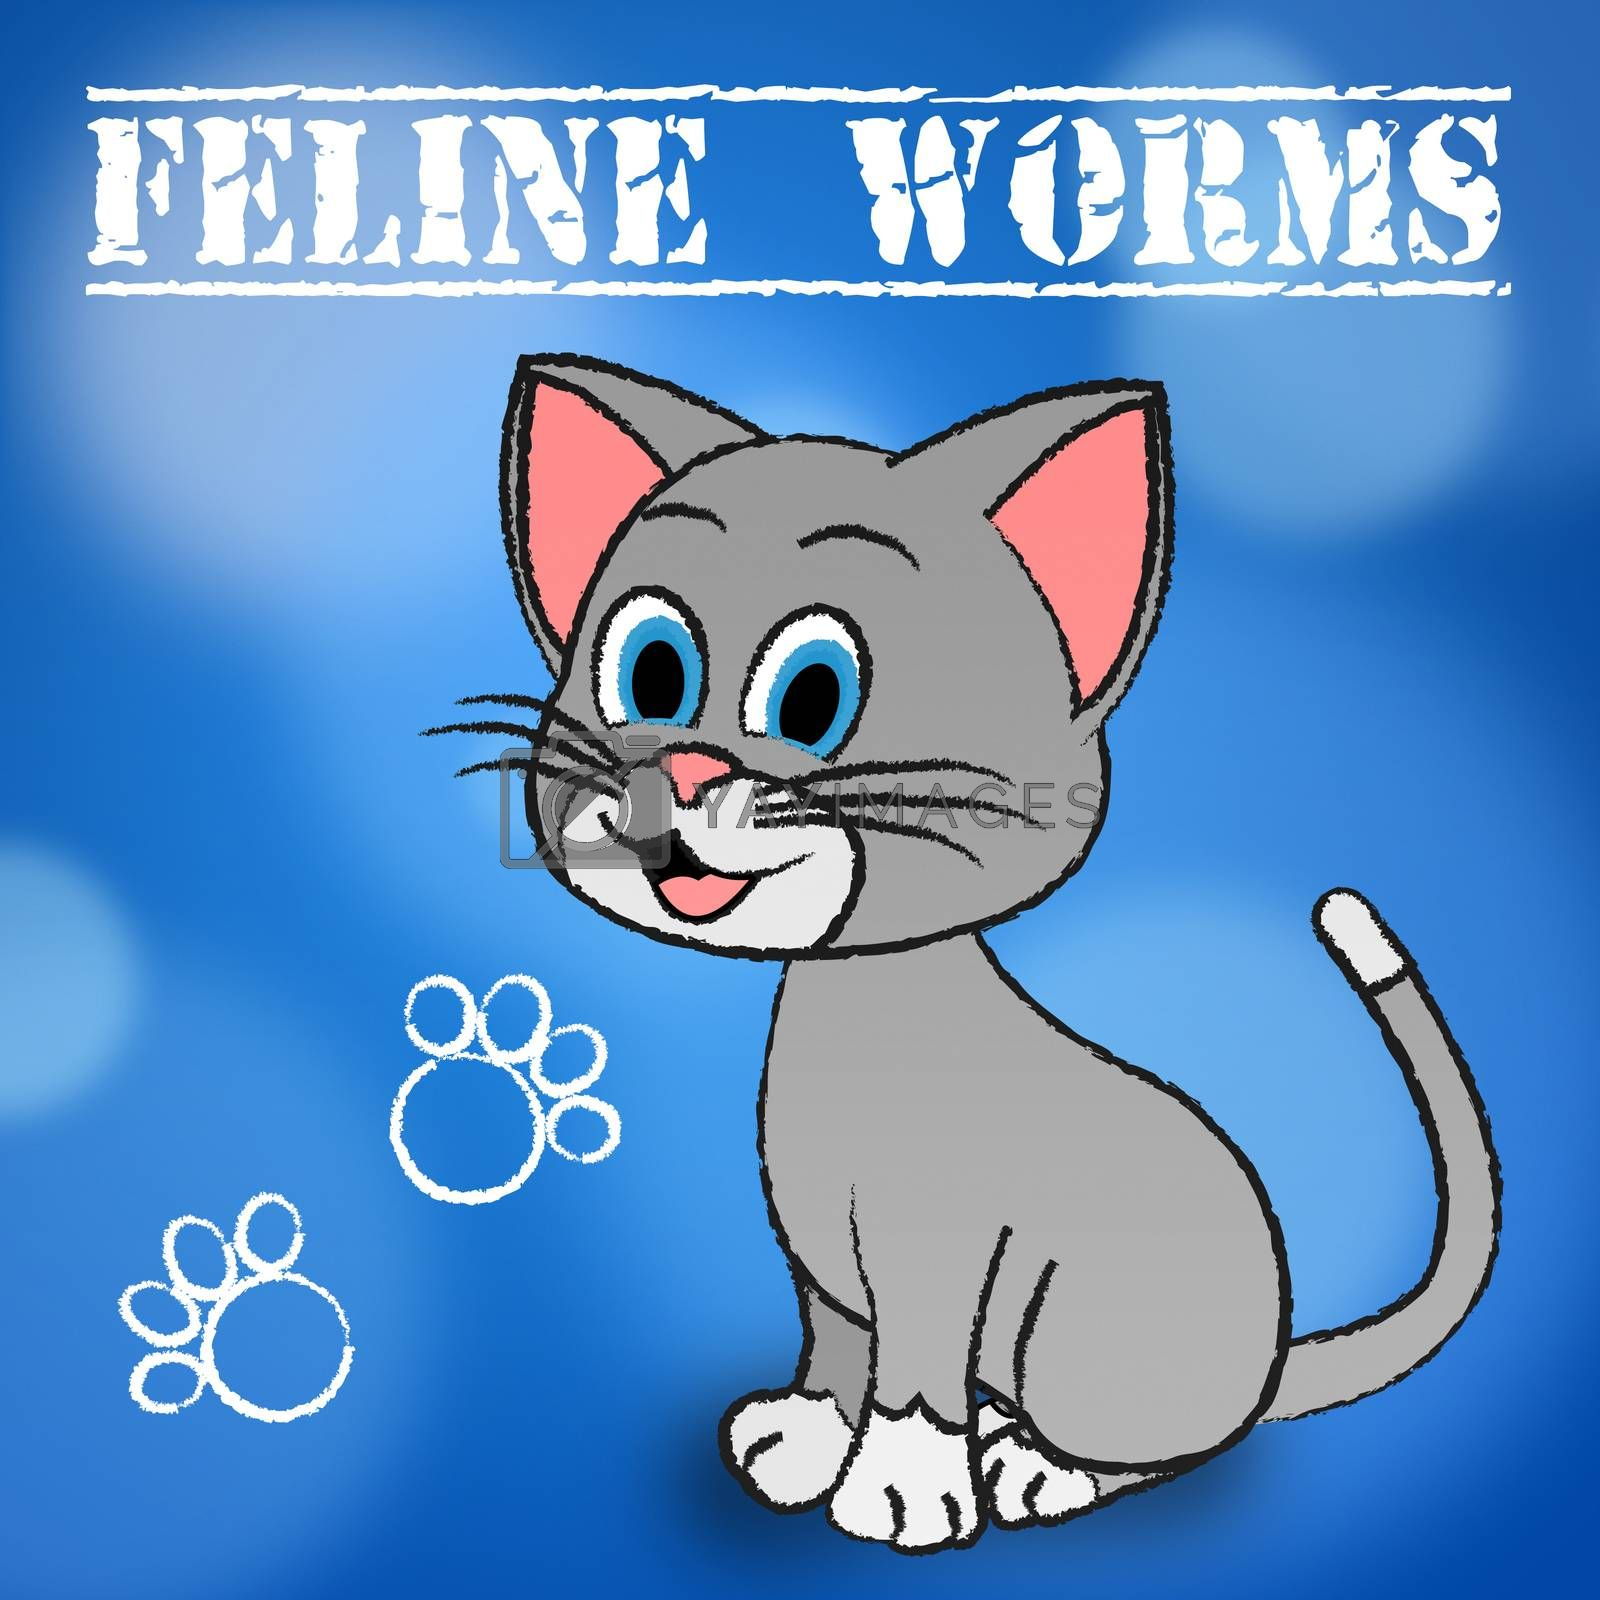 Feline Worms Meaning Domestic Cat And Pet